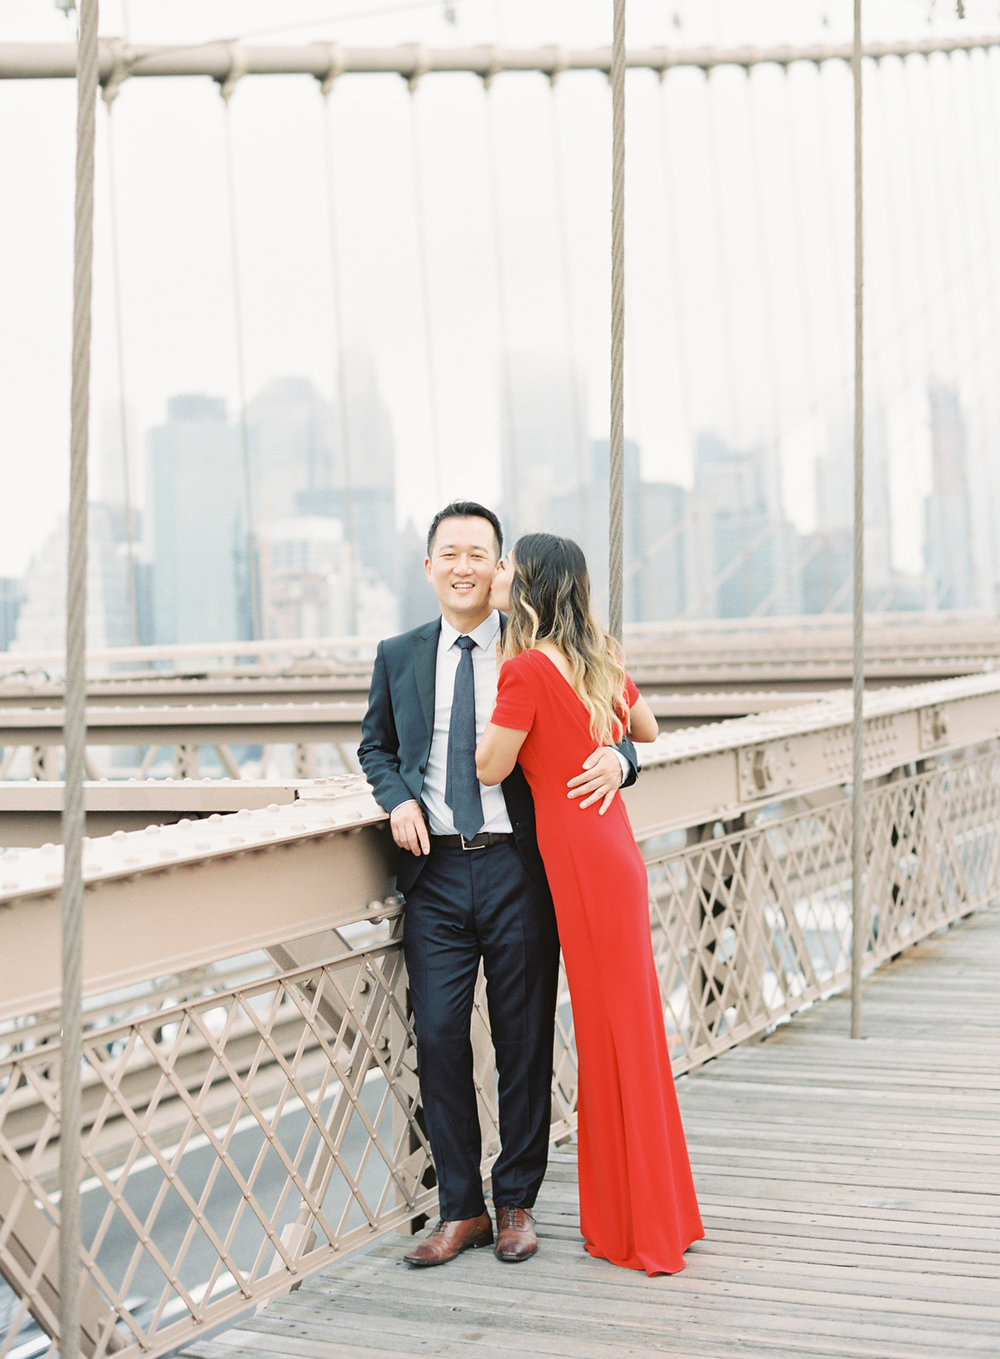 New-York-Film-Engagement-Session-Brooklyn-Bridge-Central-Park-1.jpg